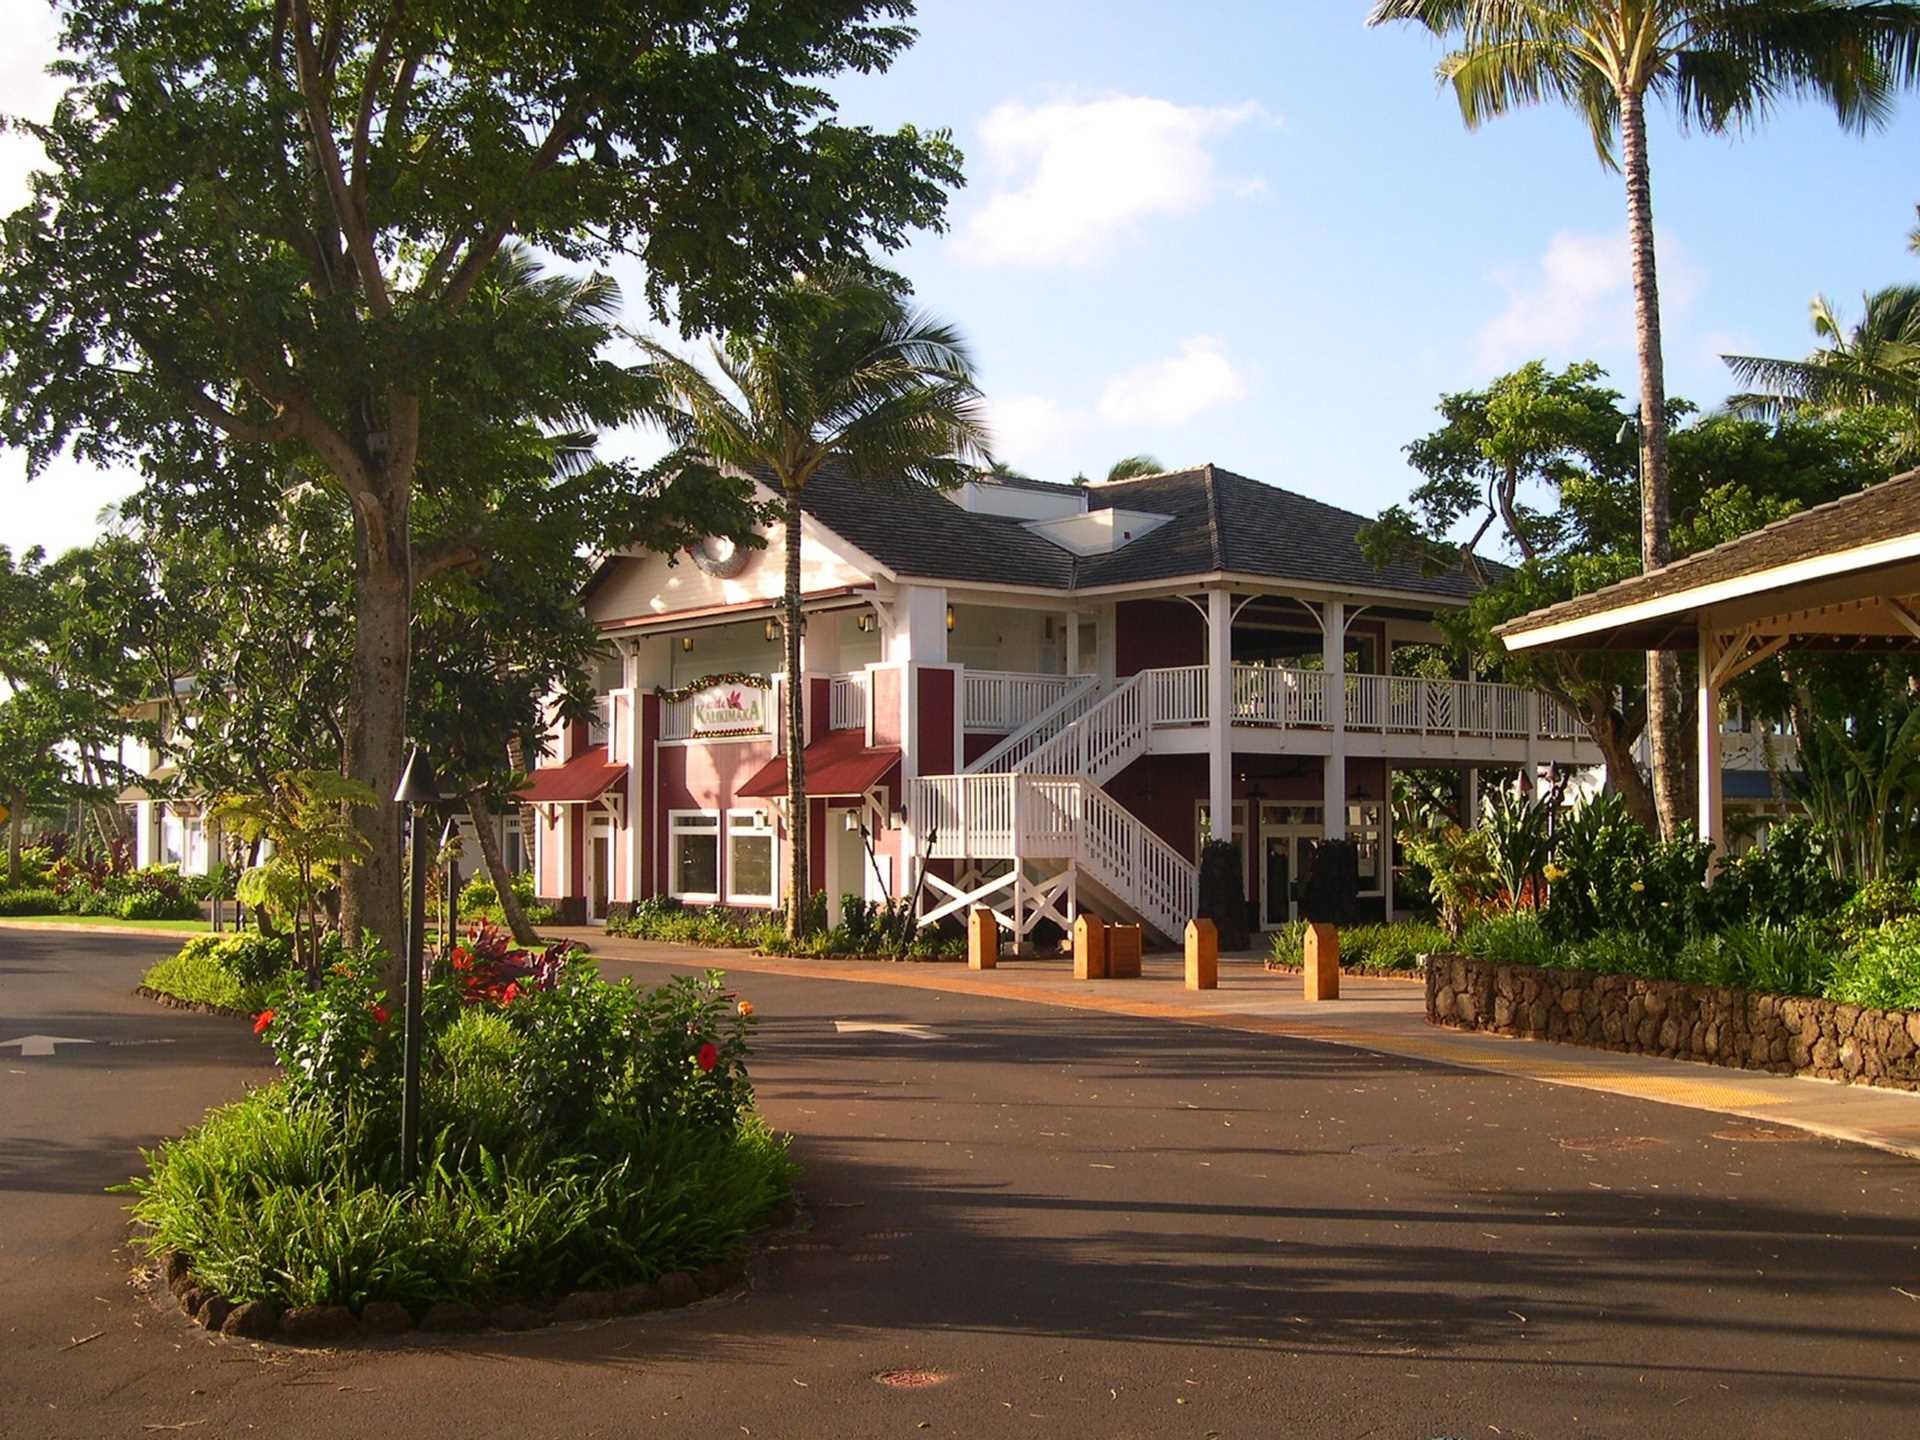 Kukui'Ula village has great shopping botiques and restaurant